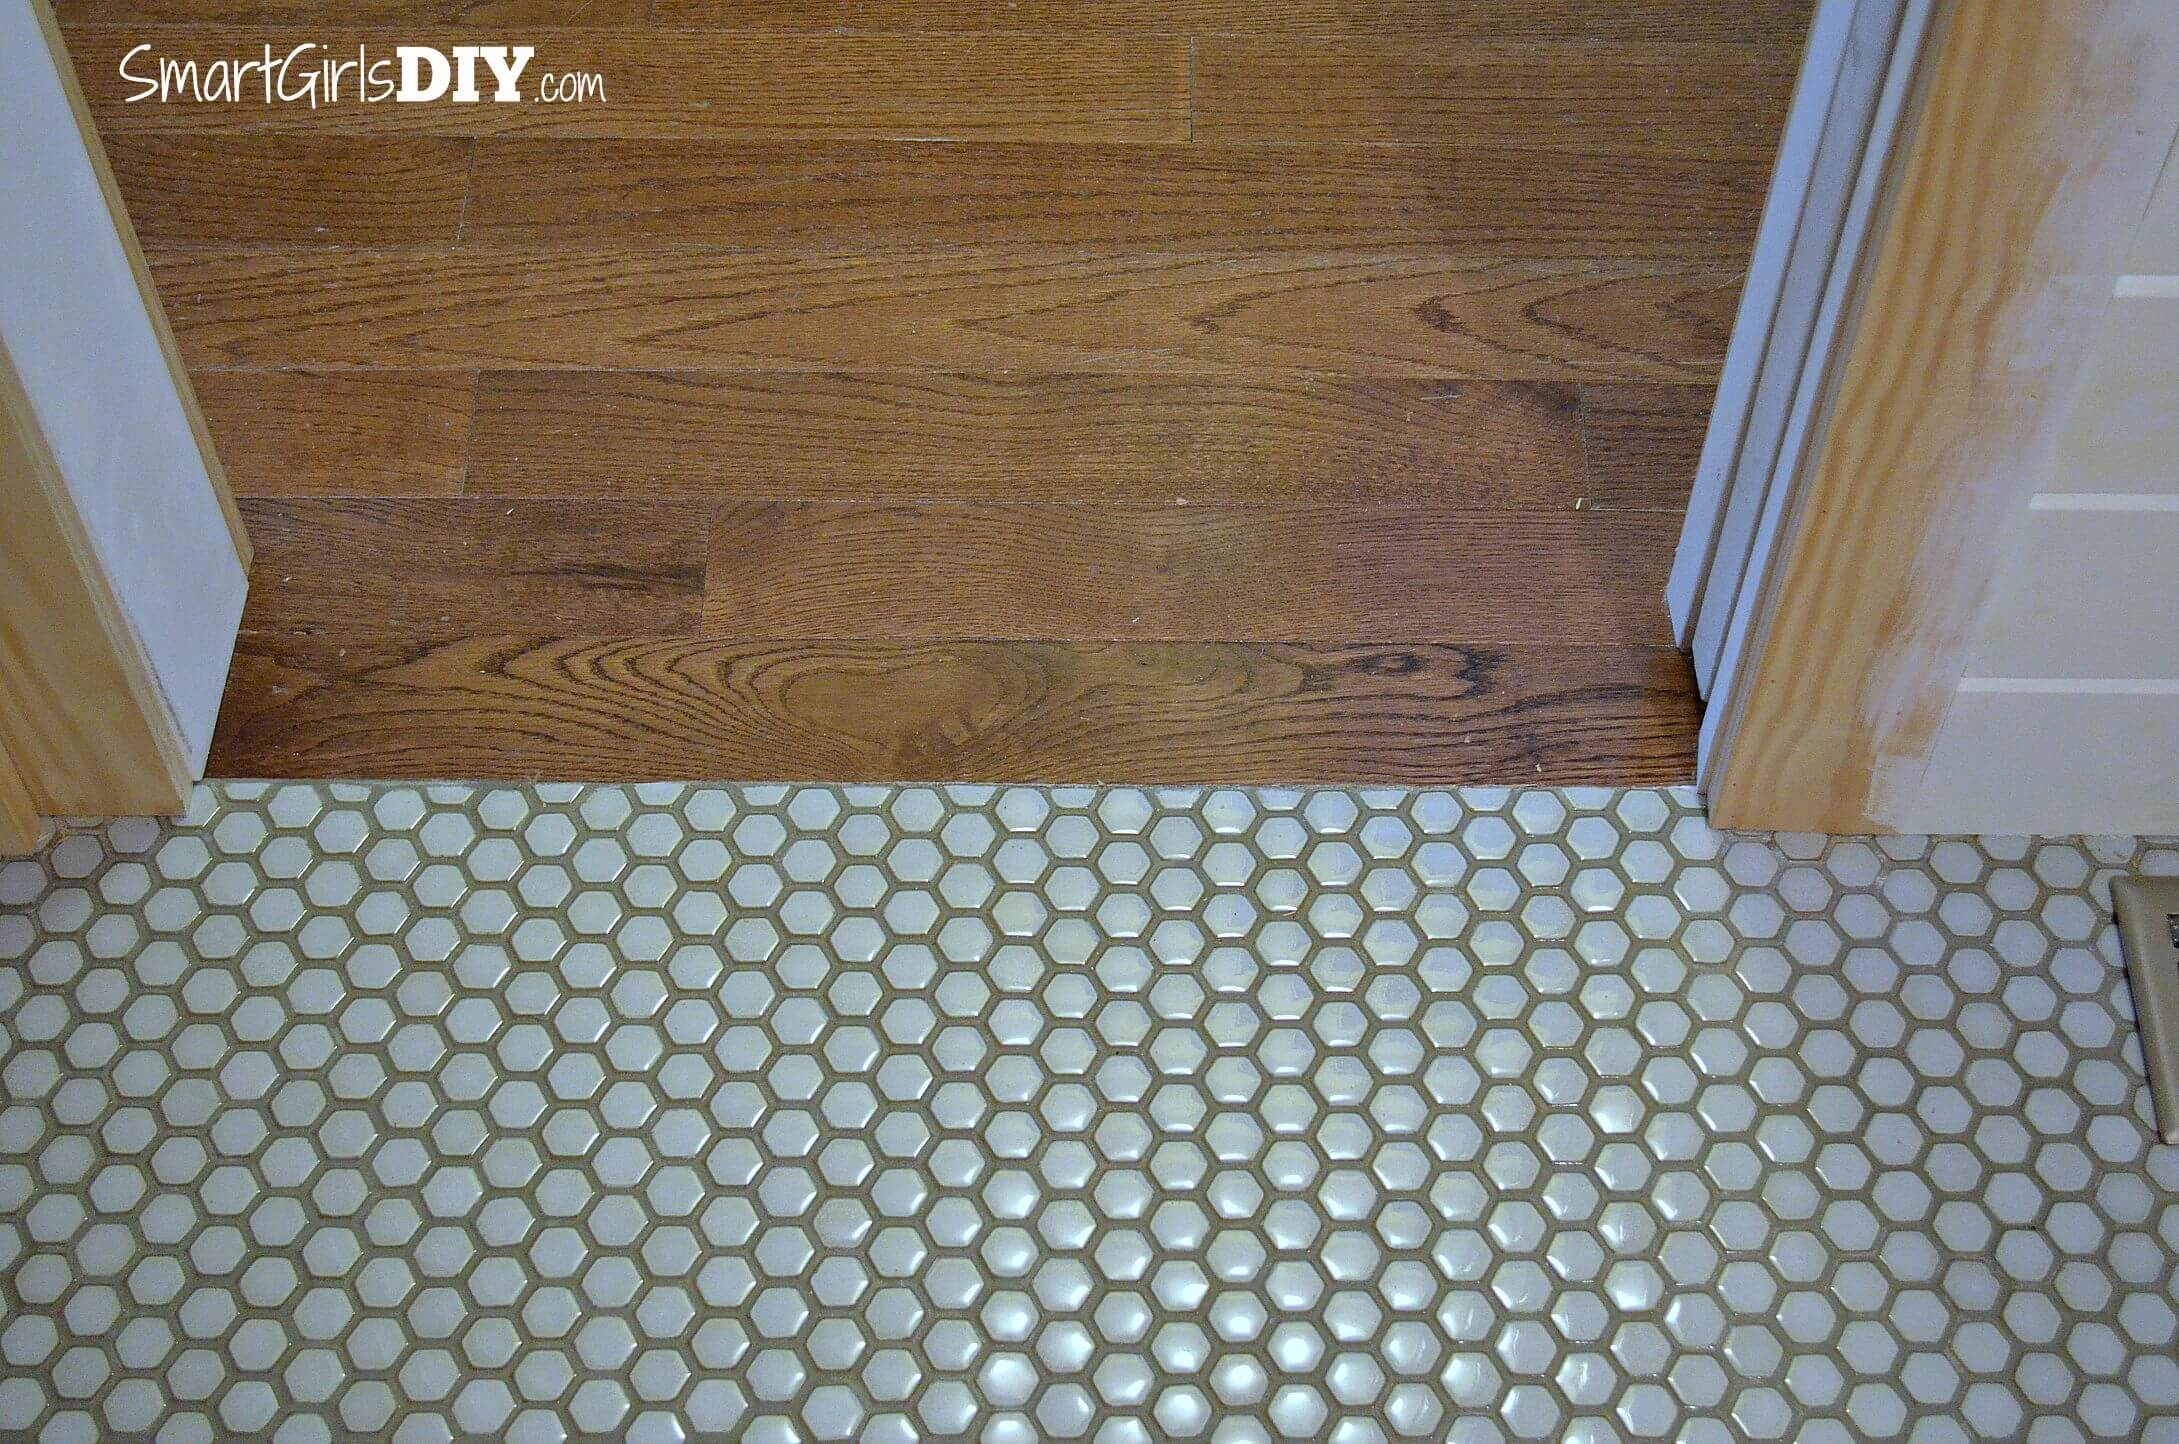 Guest bathroom 7 diy hex tile floor smooth transition between mosaic floor tile and hard wood flooring dailygadgetfo Choice Image